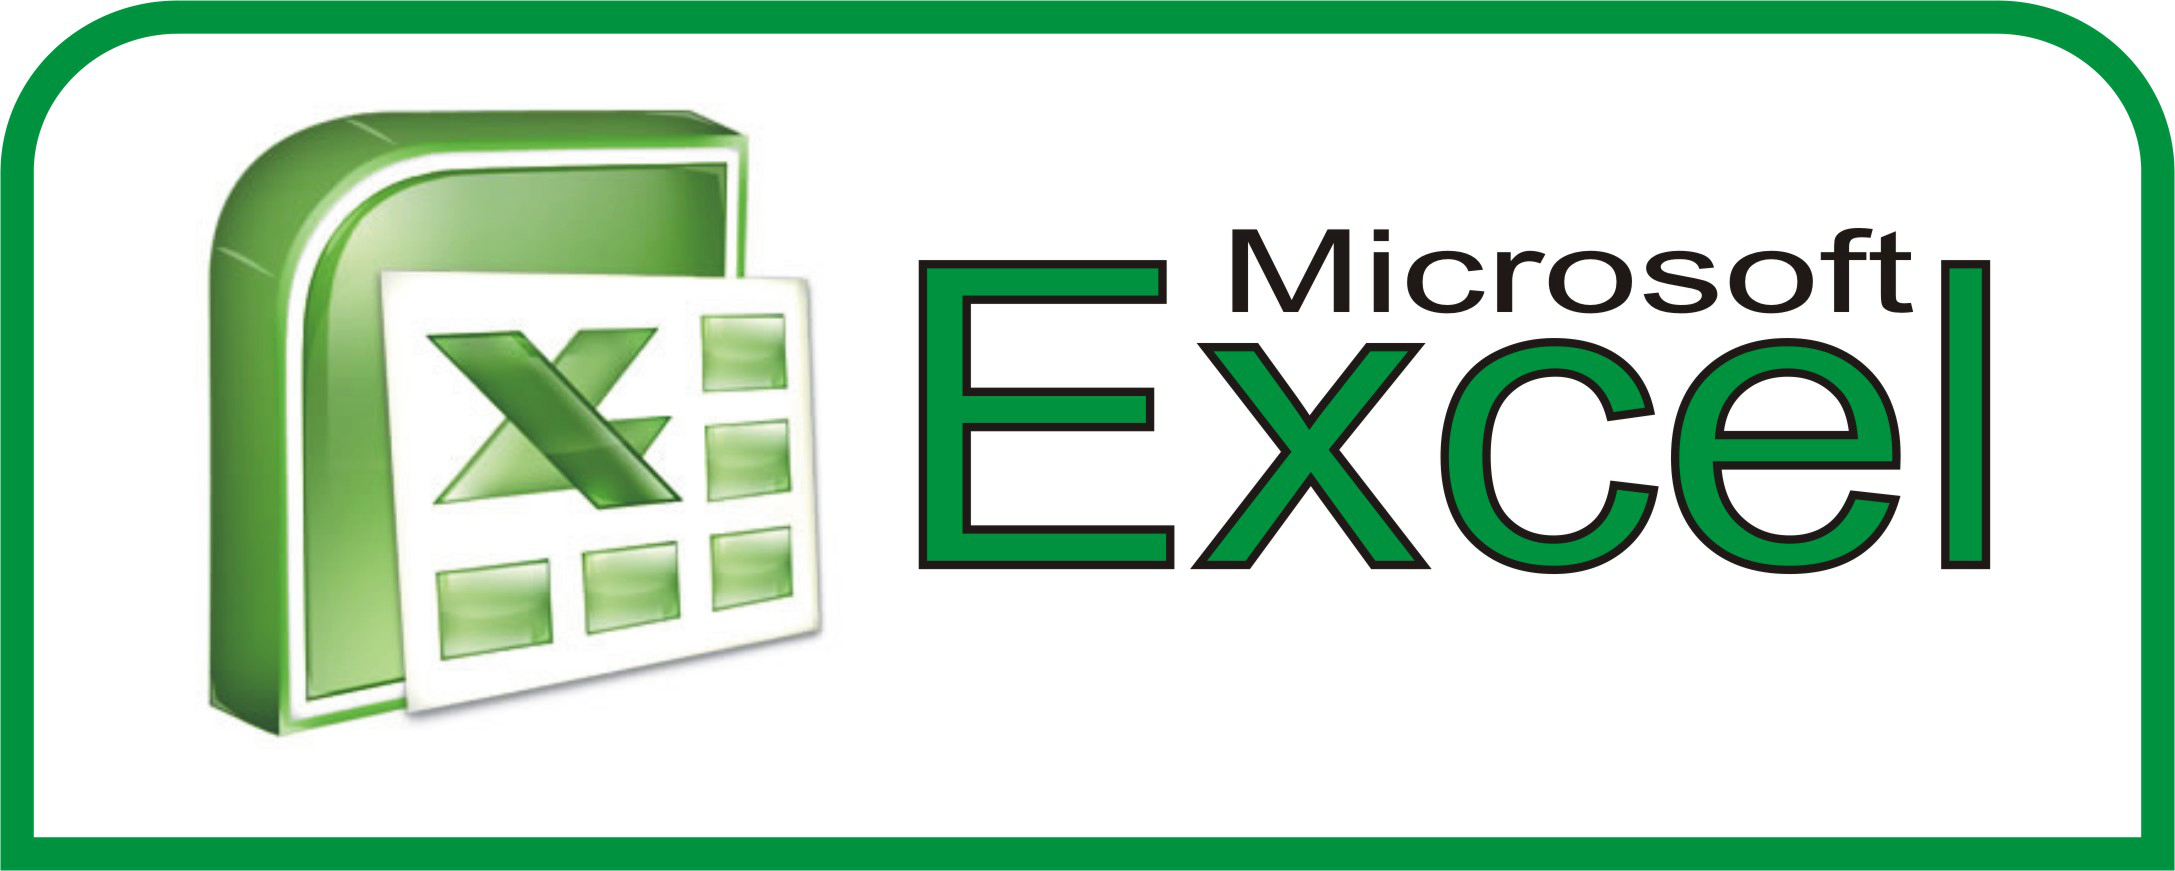 Ediblewildsus  Winning  Excel Shortcuts You Probably Didnt Know About  Techdissected With Luxury Excel Divide Function Besides Multiply On Excel Furthermore Excel Business Days With Nice Excel Convert Date To Number Also Minus In Excel In Addition Today In Excel And Boxplot Excel As Well As How To Remove Drop Down List In Excel Additionally Excel Unique Values In Column From Techdissectedcom With Ediblewildsus  Luxury  Excel Shortcuts You Probably Didnt Know About  Techdissected With Nice Excel Divide Function Besides Multiply On Excel Furthermore Excel Business Days And Winning Excel Convert Date To Number Also Minus In Excel In Addition Today In Excel From Techdissectedcom